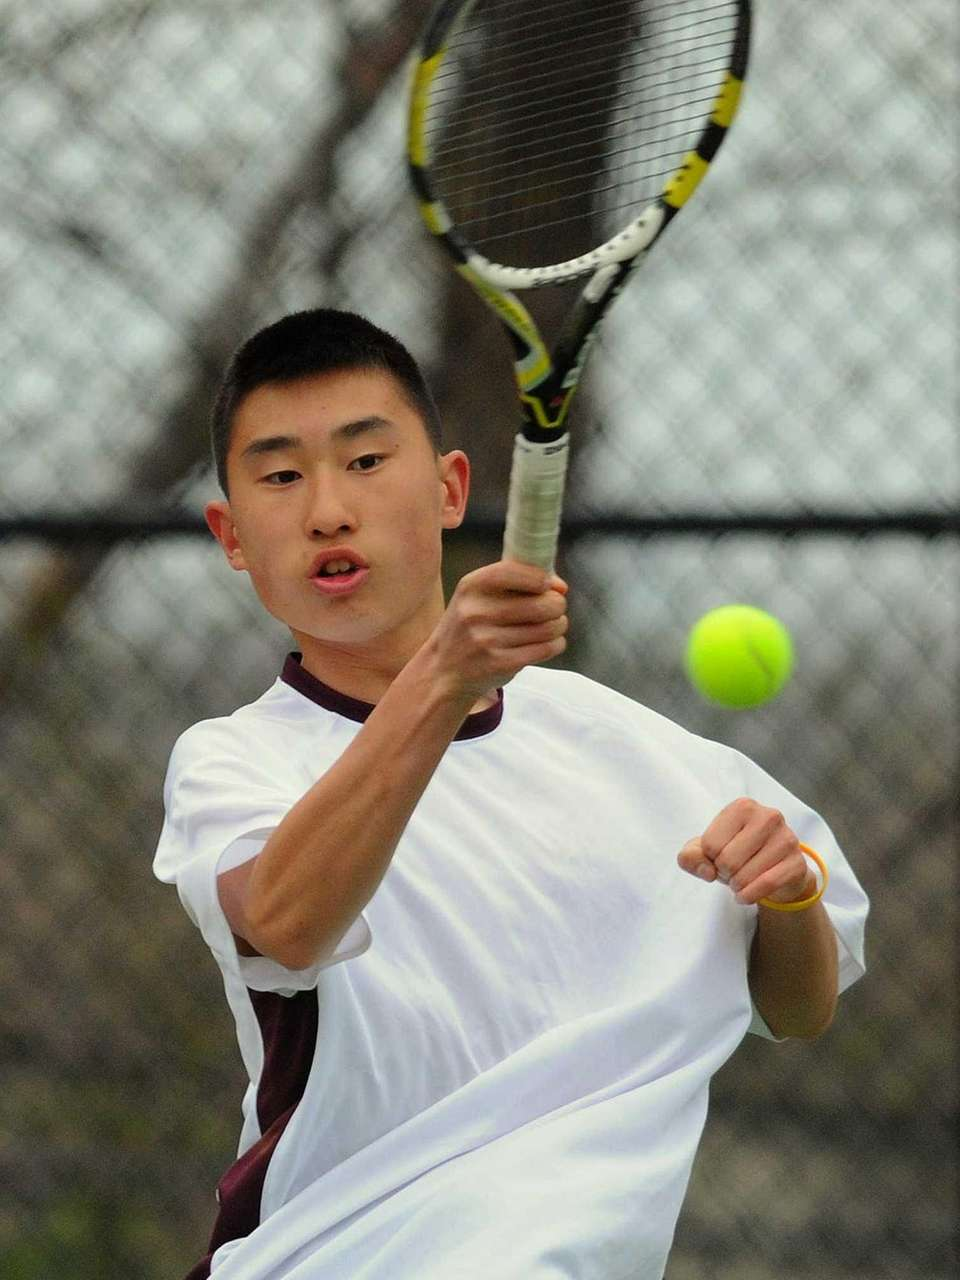 Whitman's Justin Park returns a volley in a